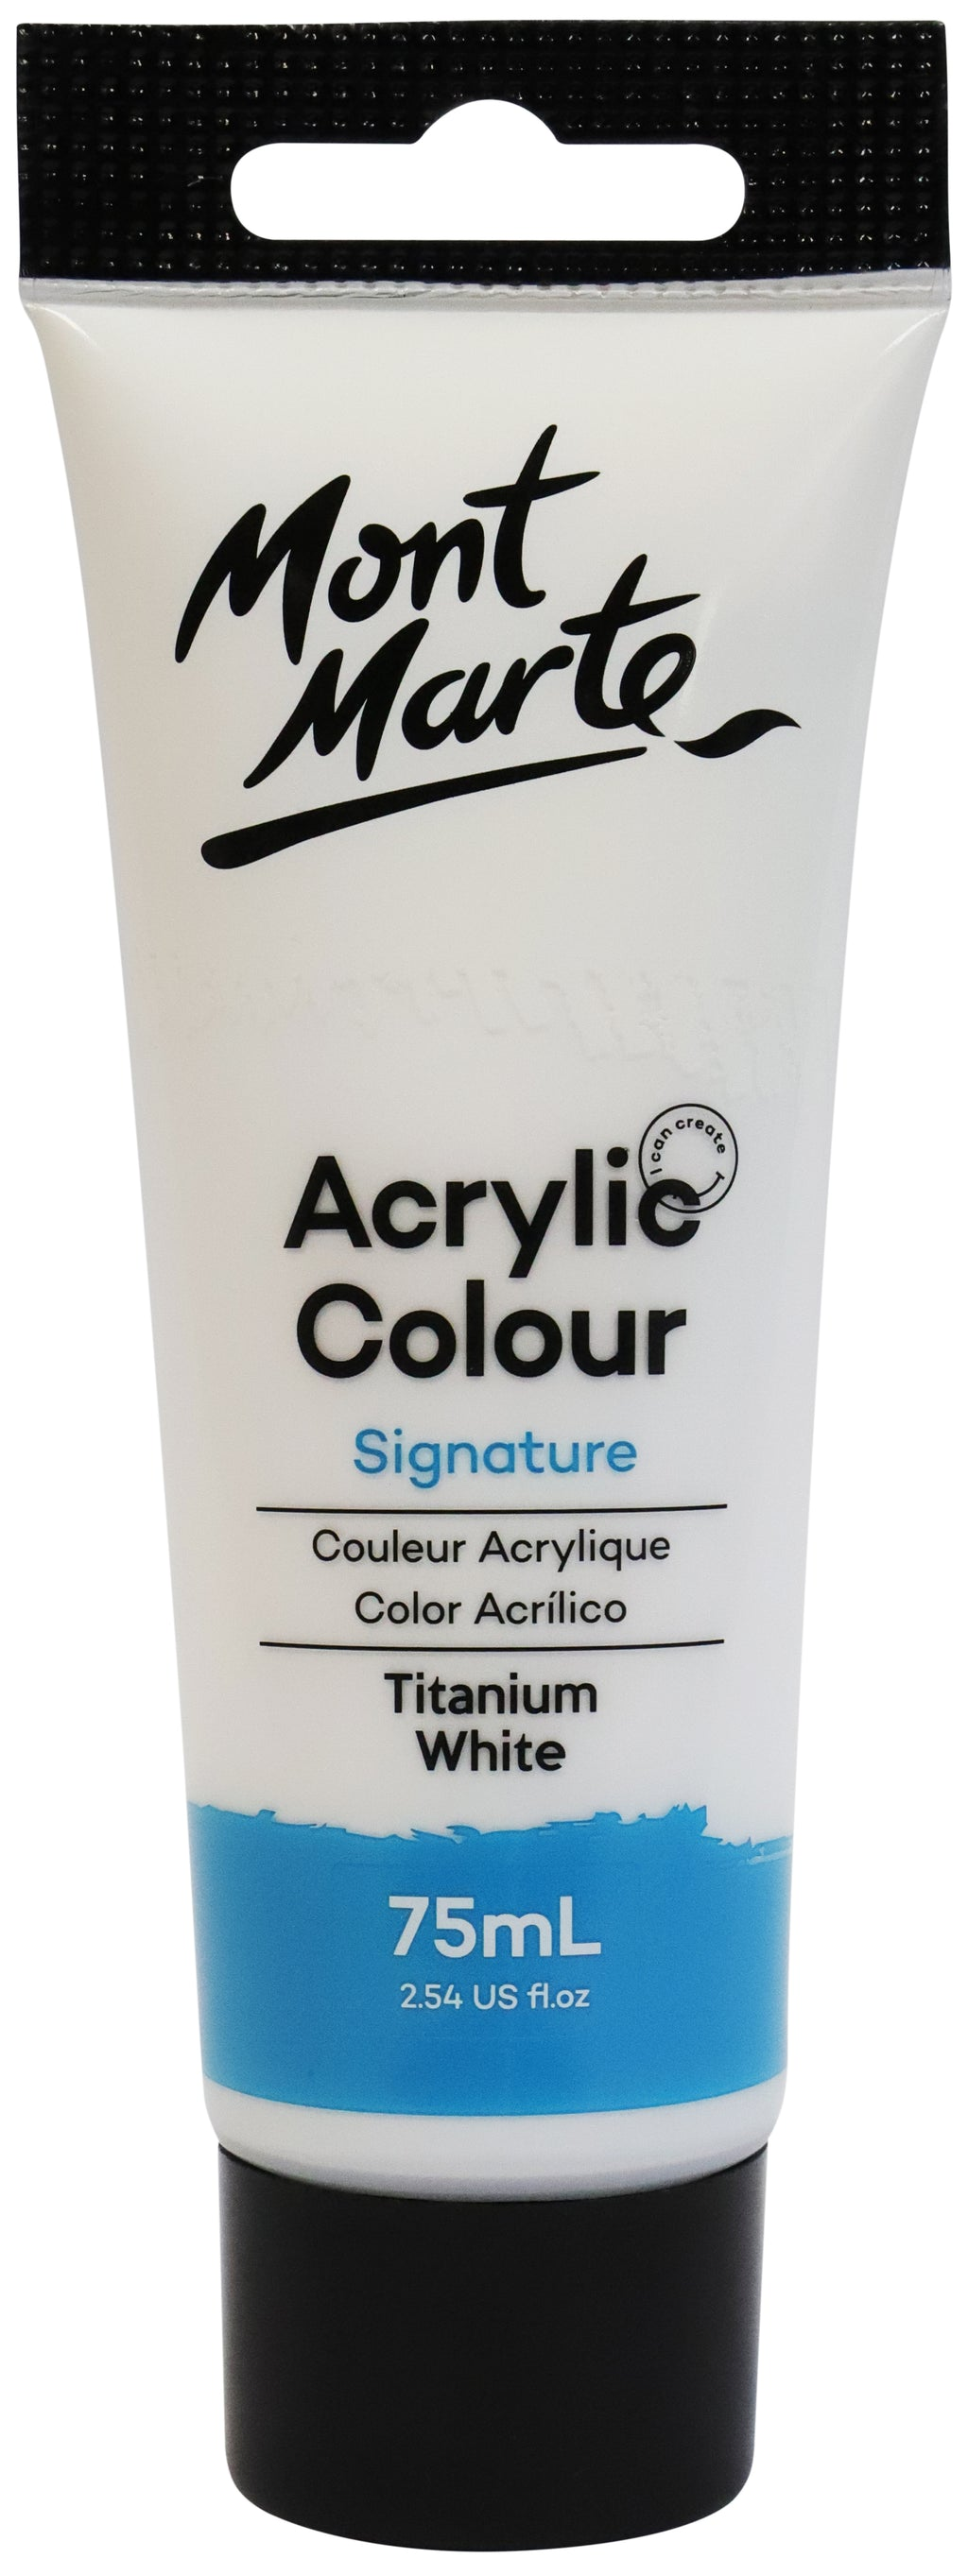 Mont Marte Acrylic Colour Paint Titanium White 75ml